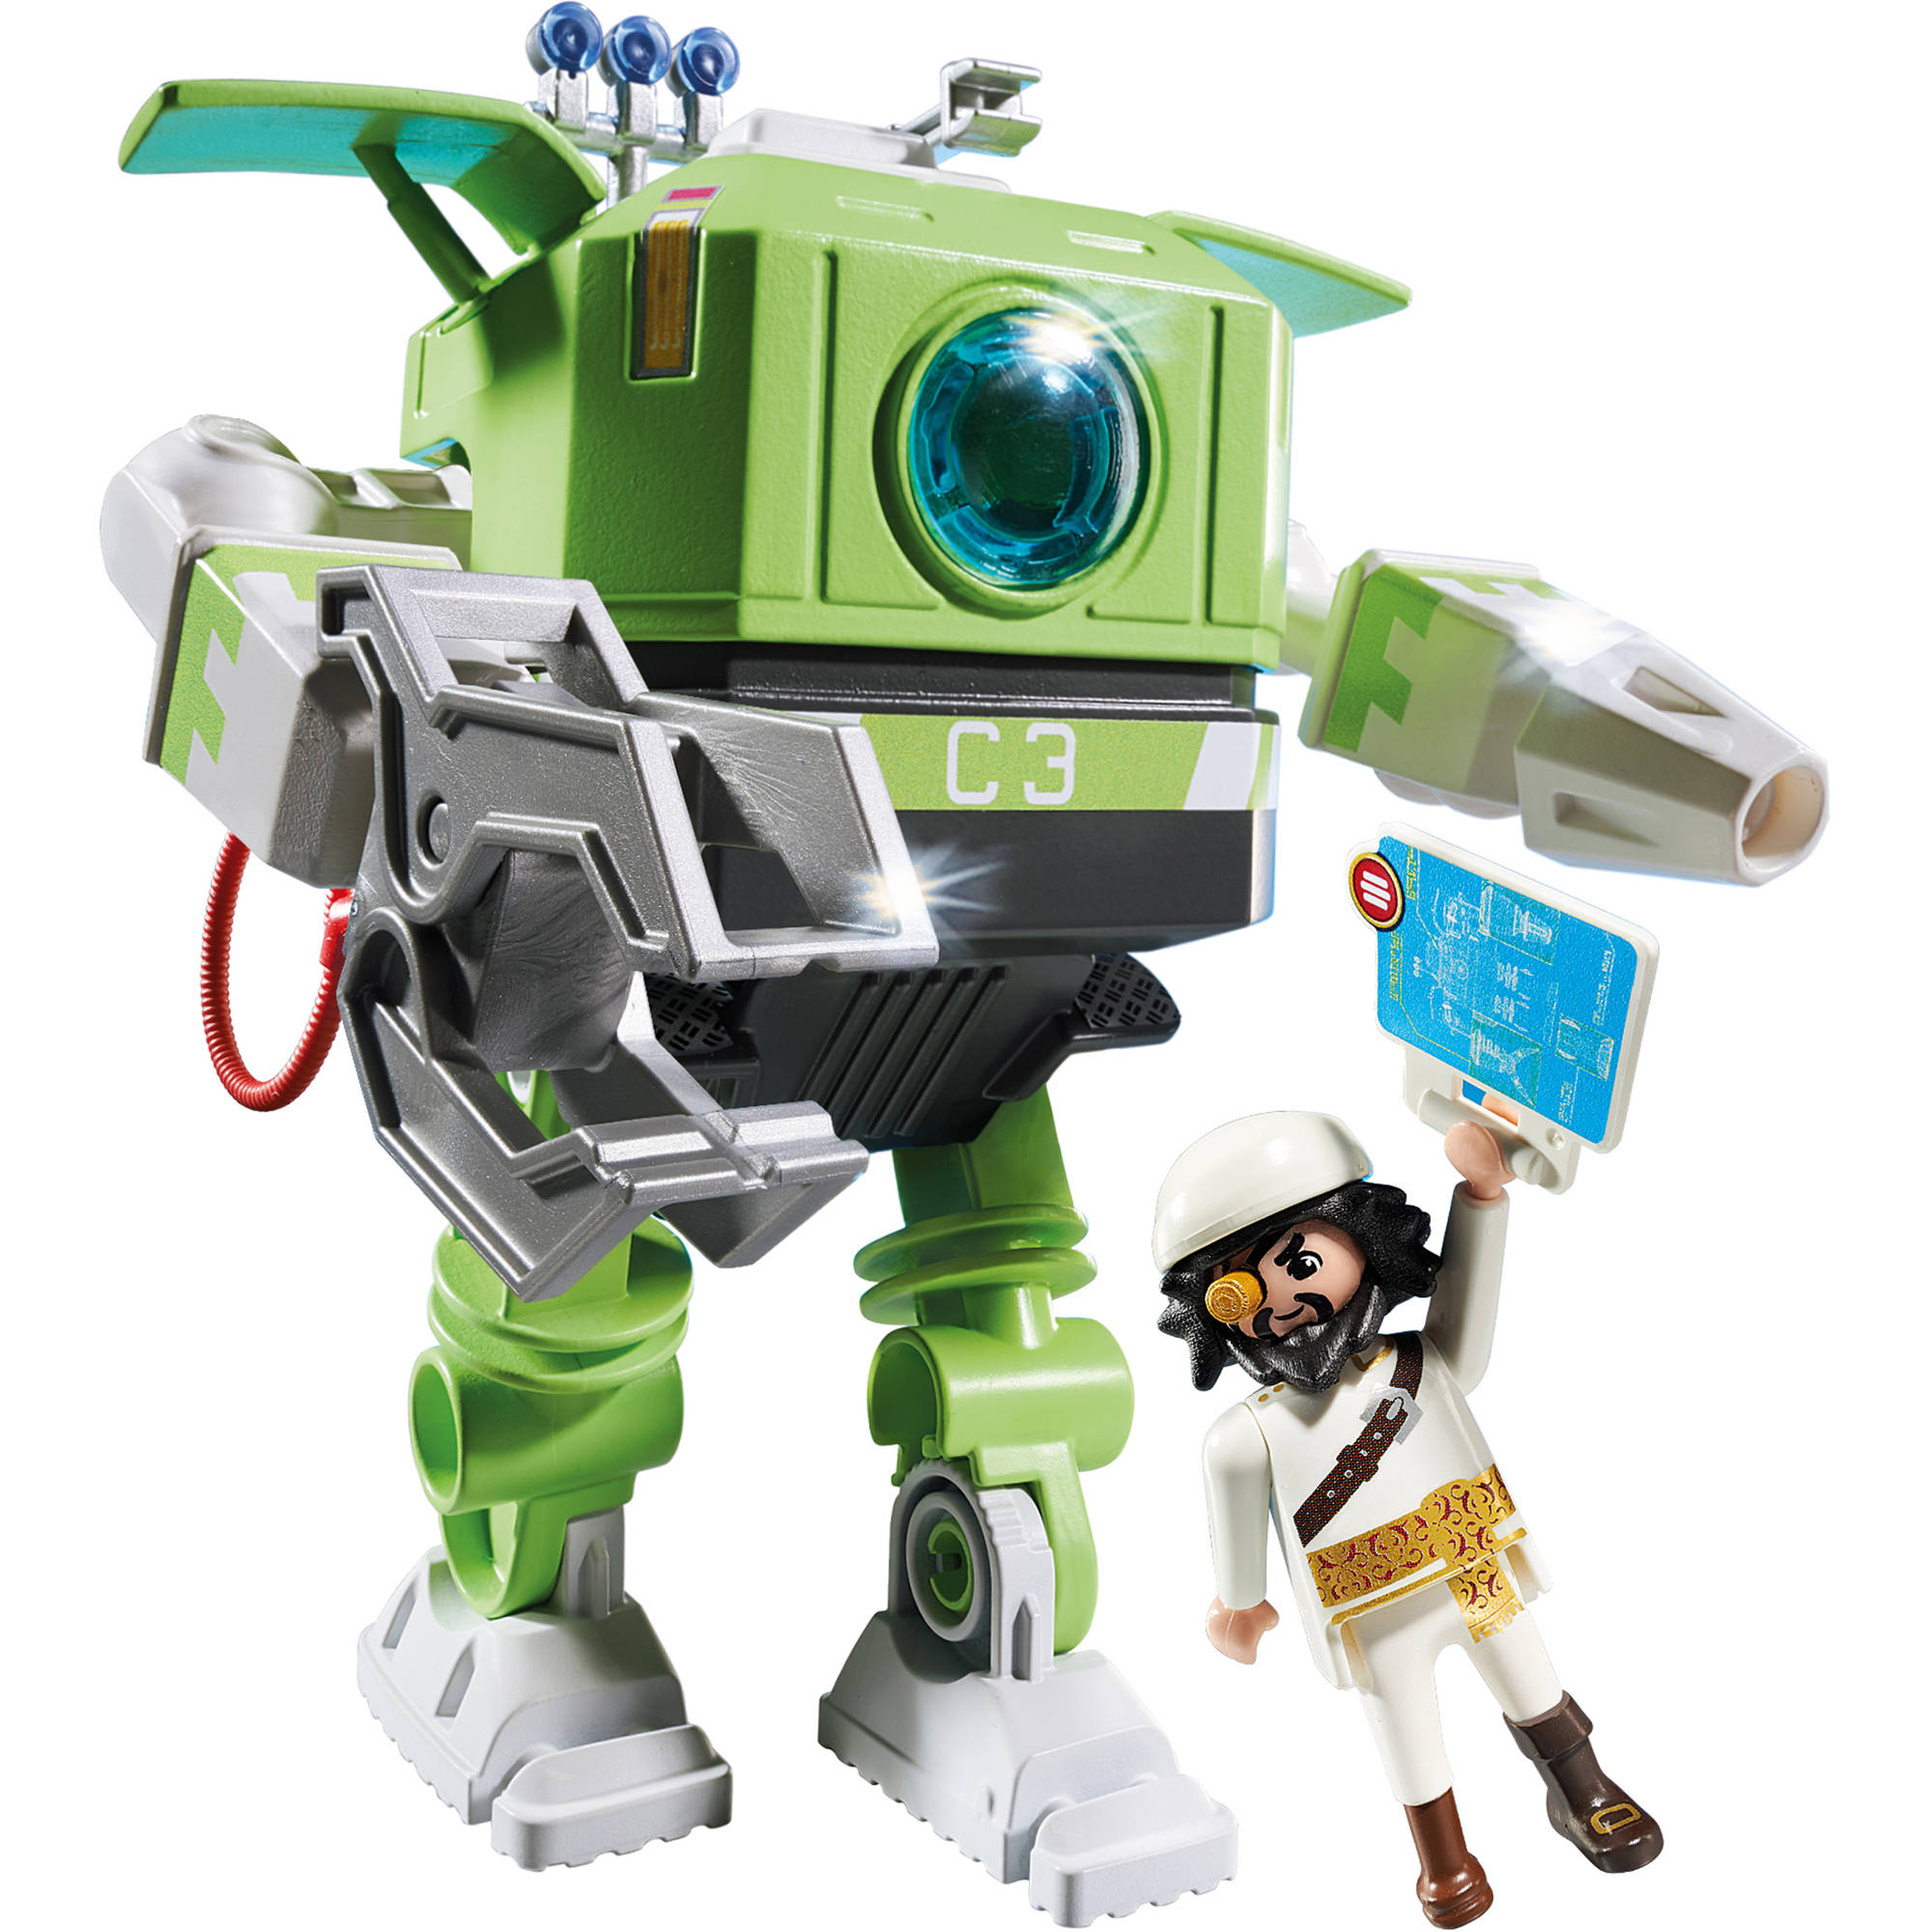 Playmobil Cleano Robot by Playmobil